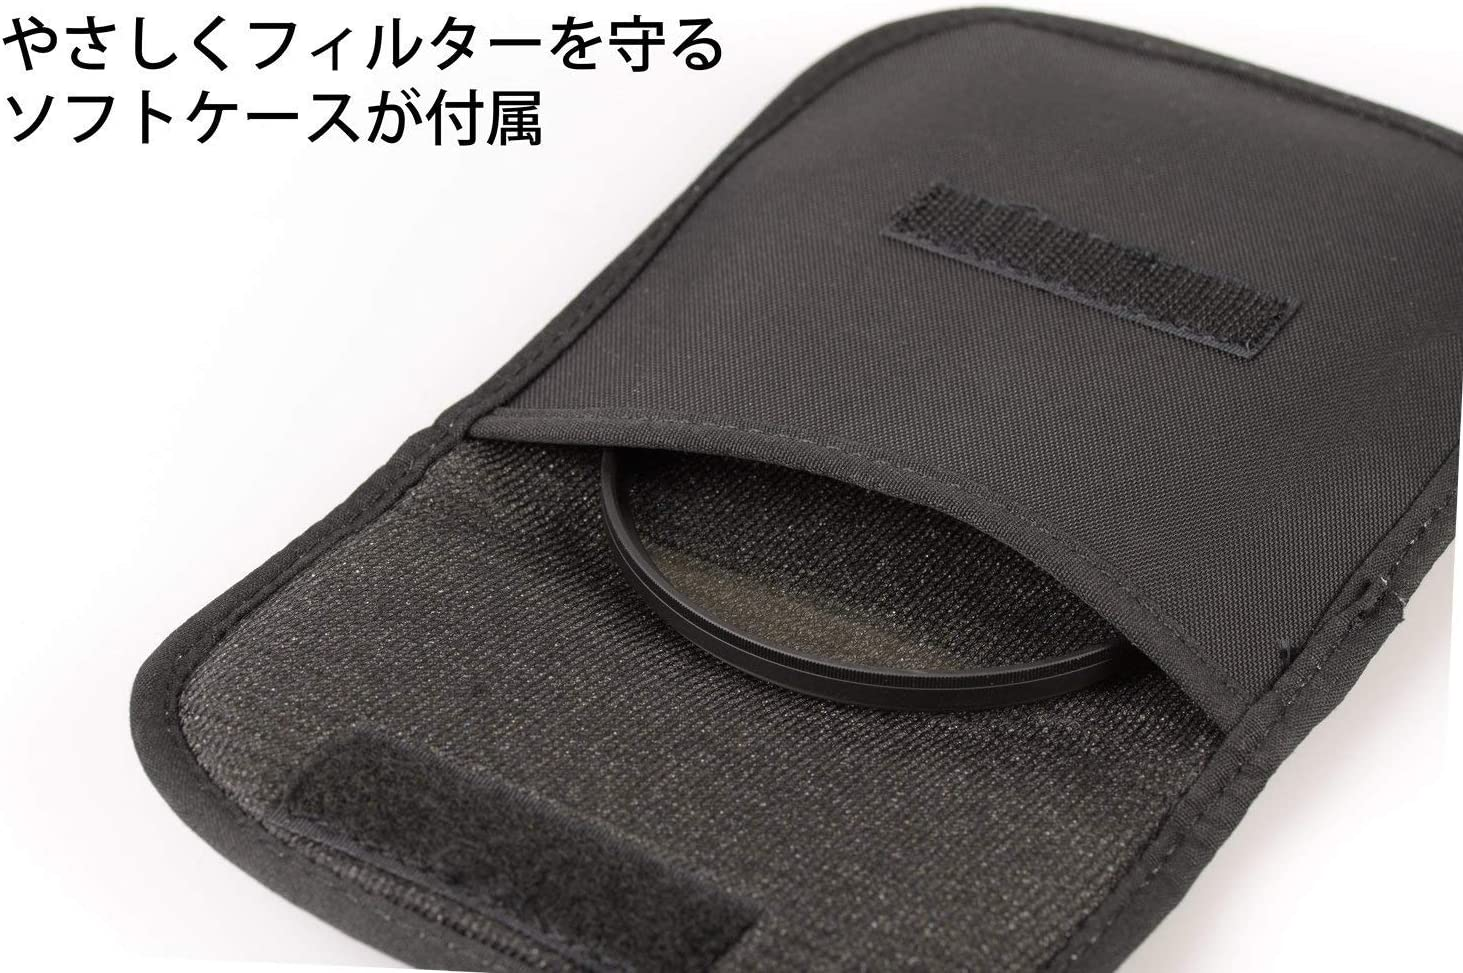 Kenko Lens Filter MC Protector Professional 112mm Lens Protection for 010,754